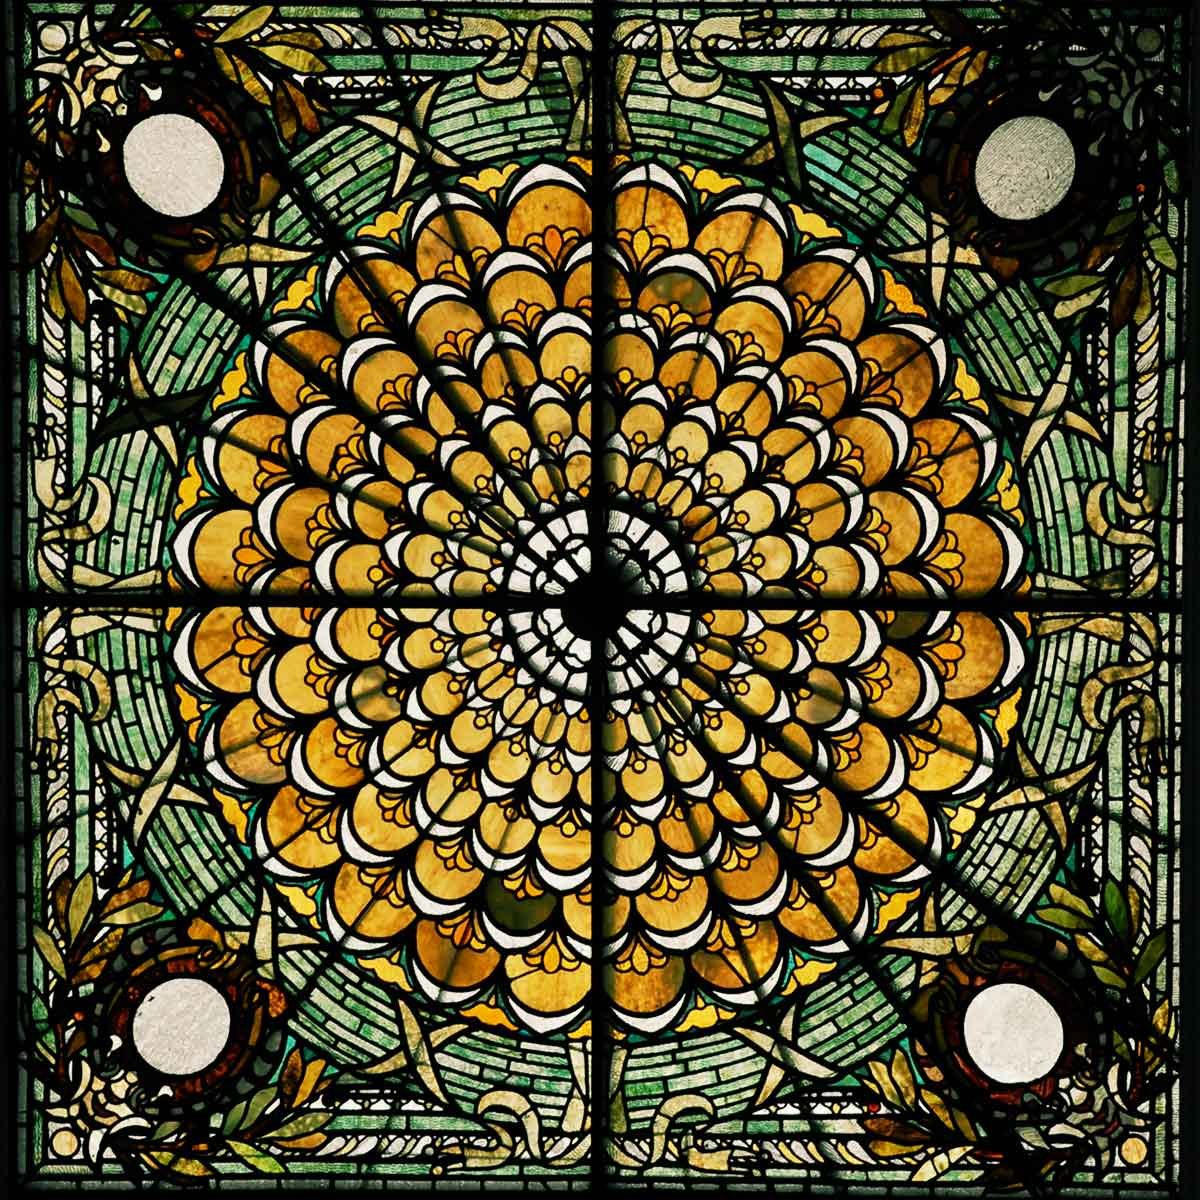 Library of Congress ceiling stained glass window